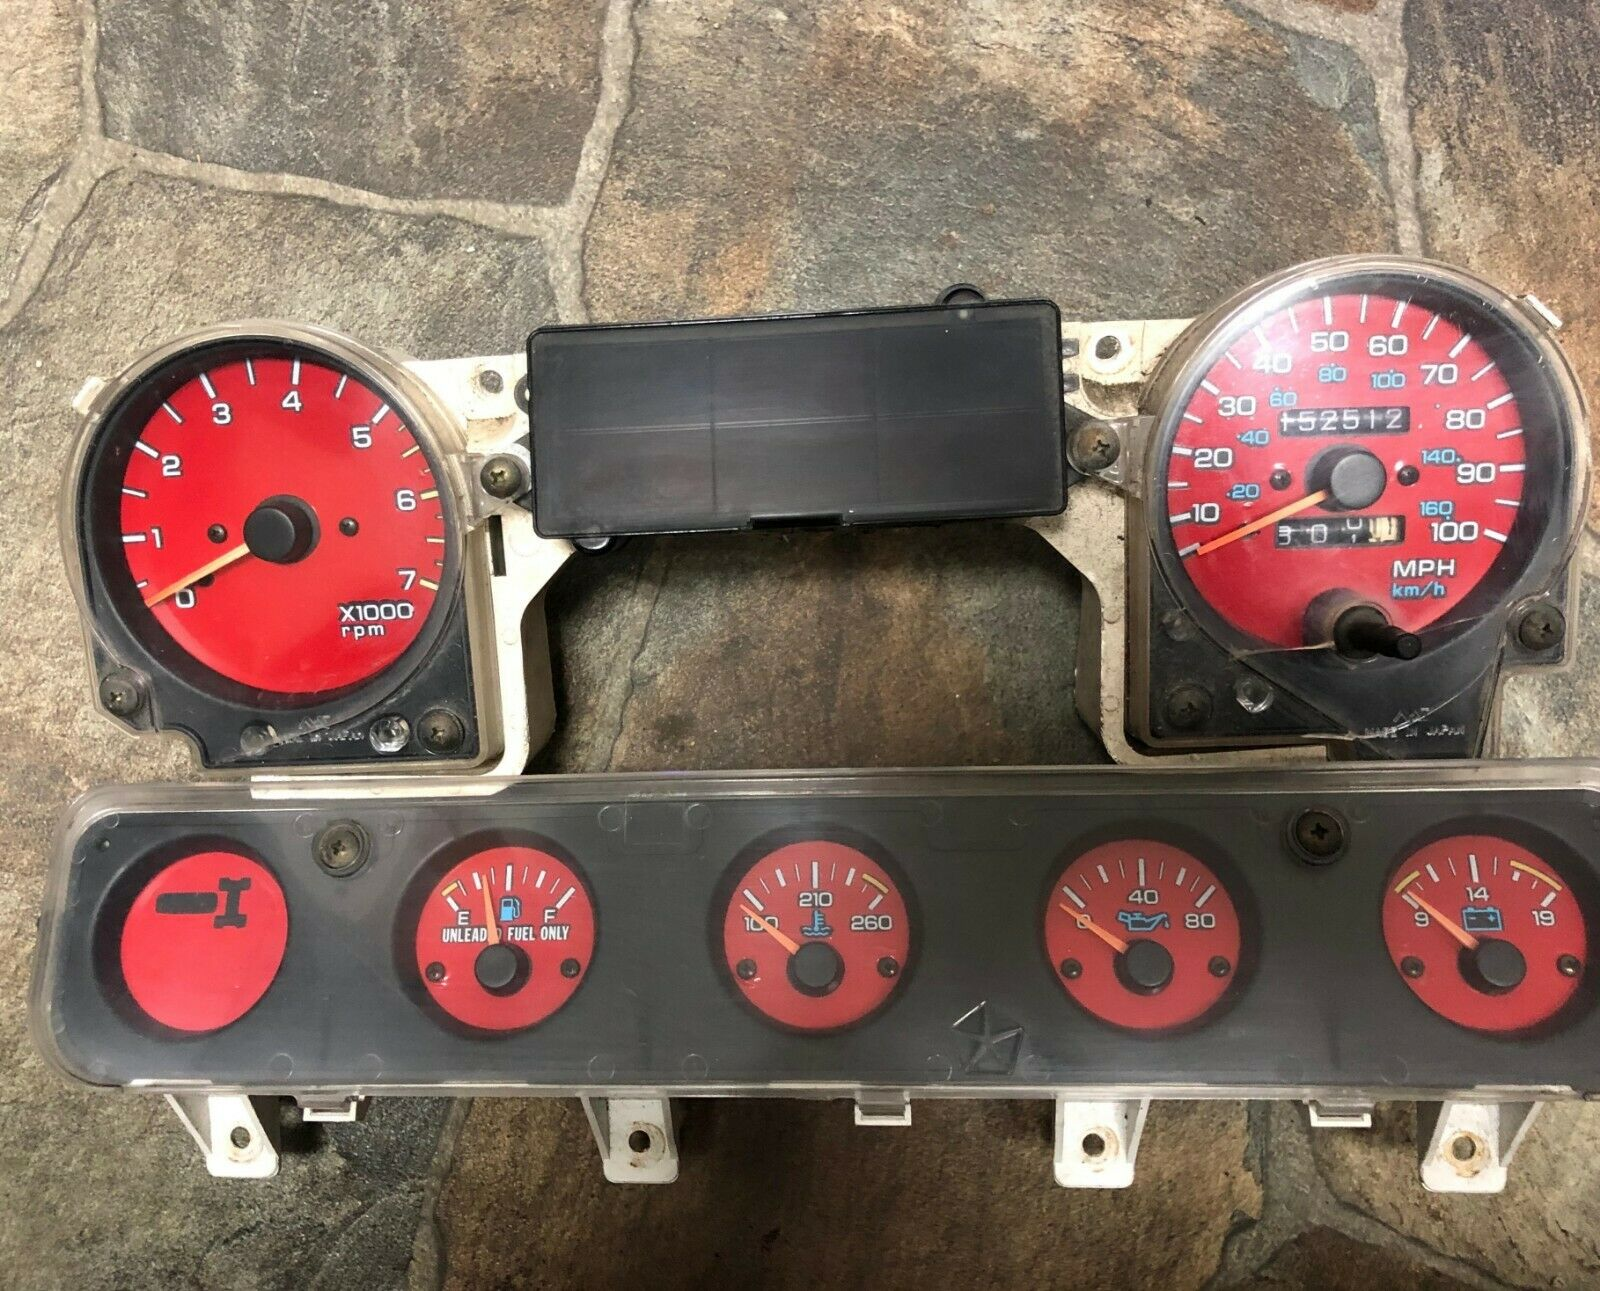 92-95 Jeep Wrangler YJ Speedo and Gas, oil, and Batt Instrument Cluster OEM 152k